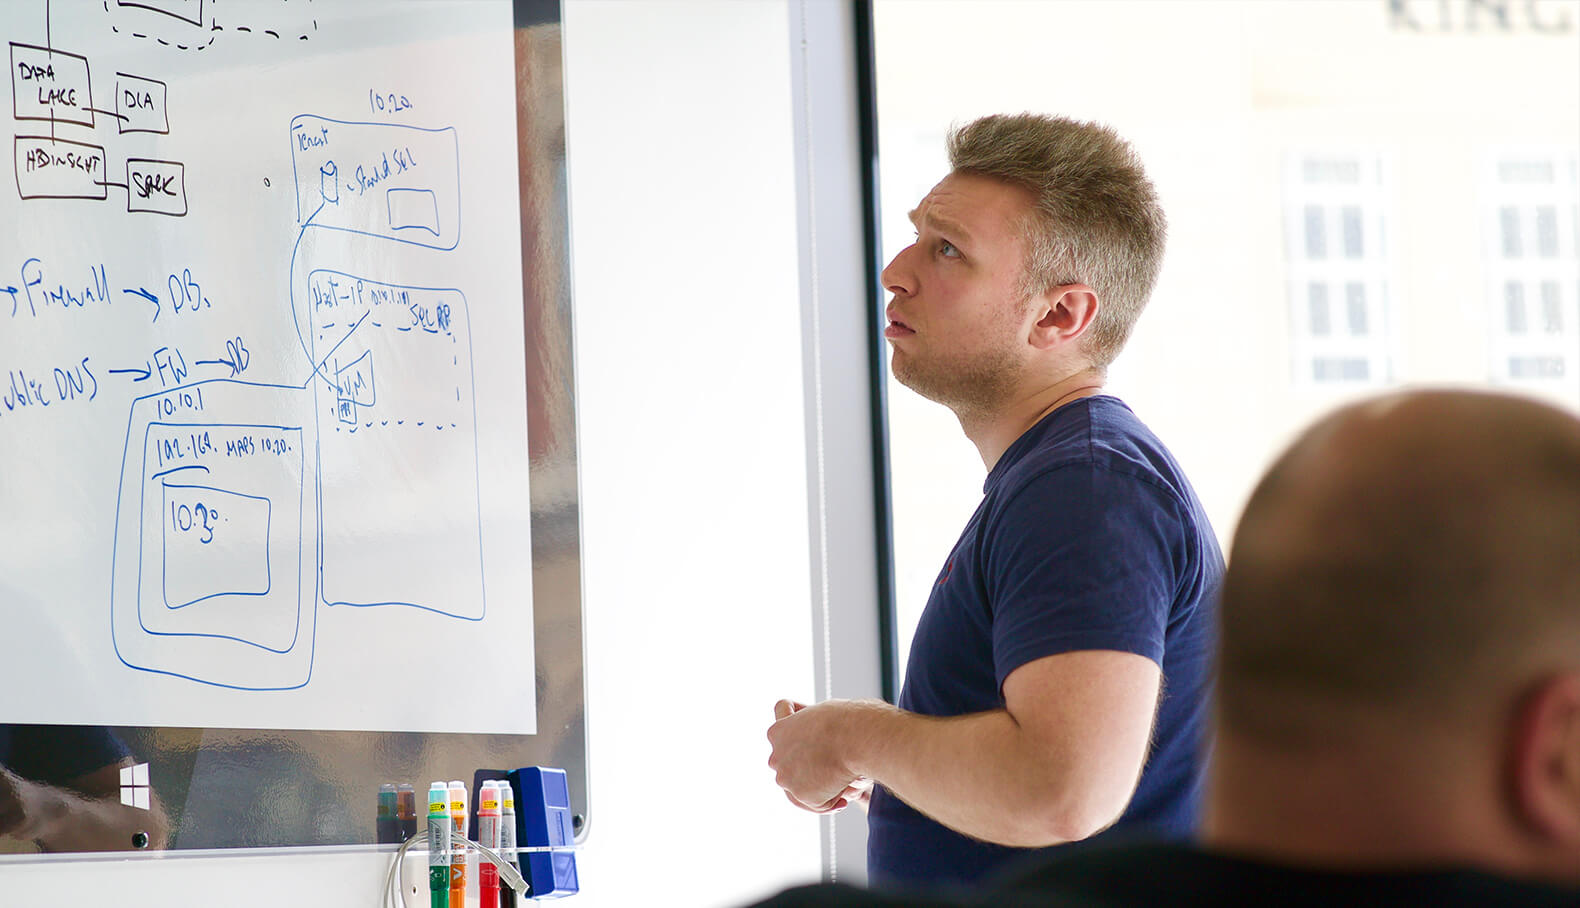 looking at a whiteboard for azure vdi